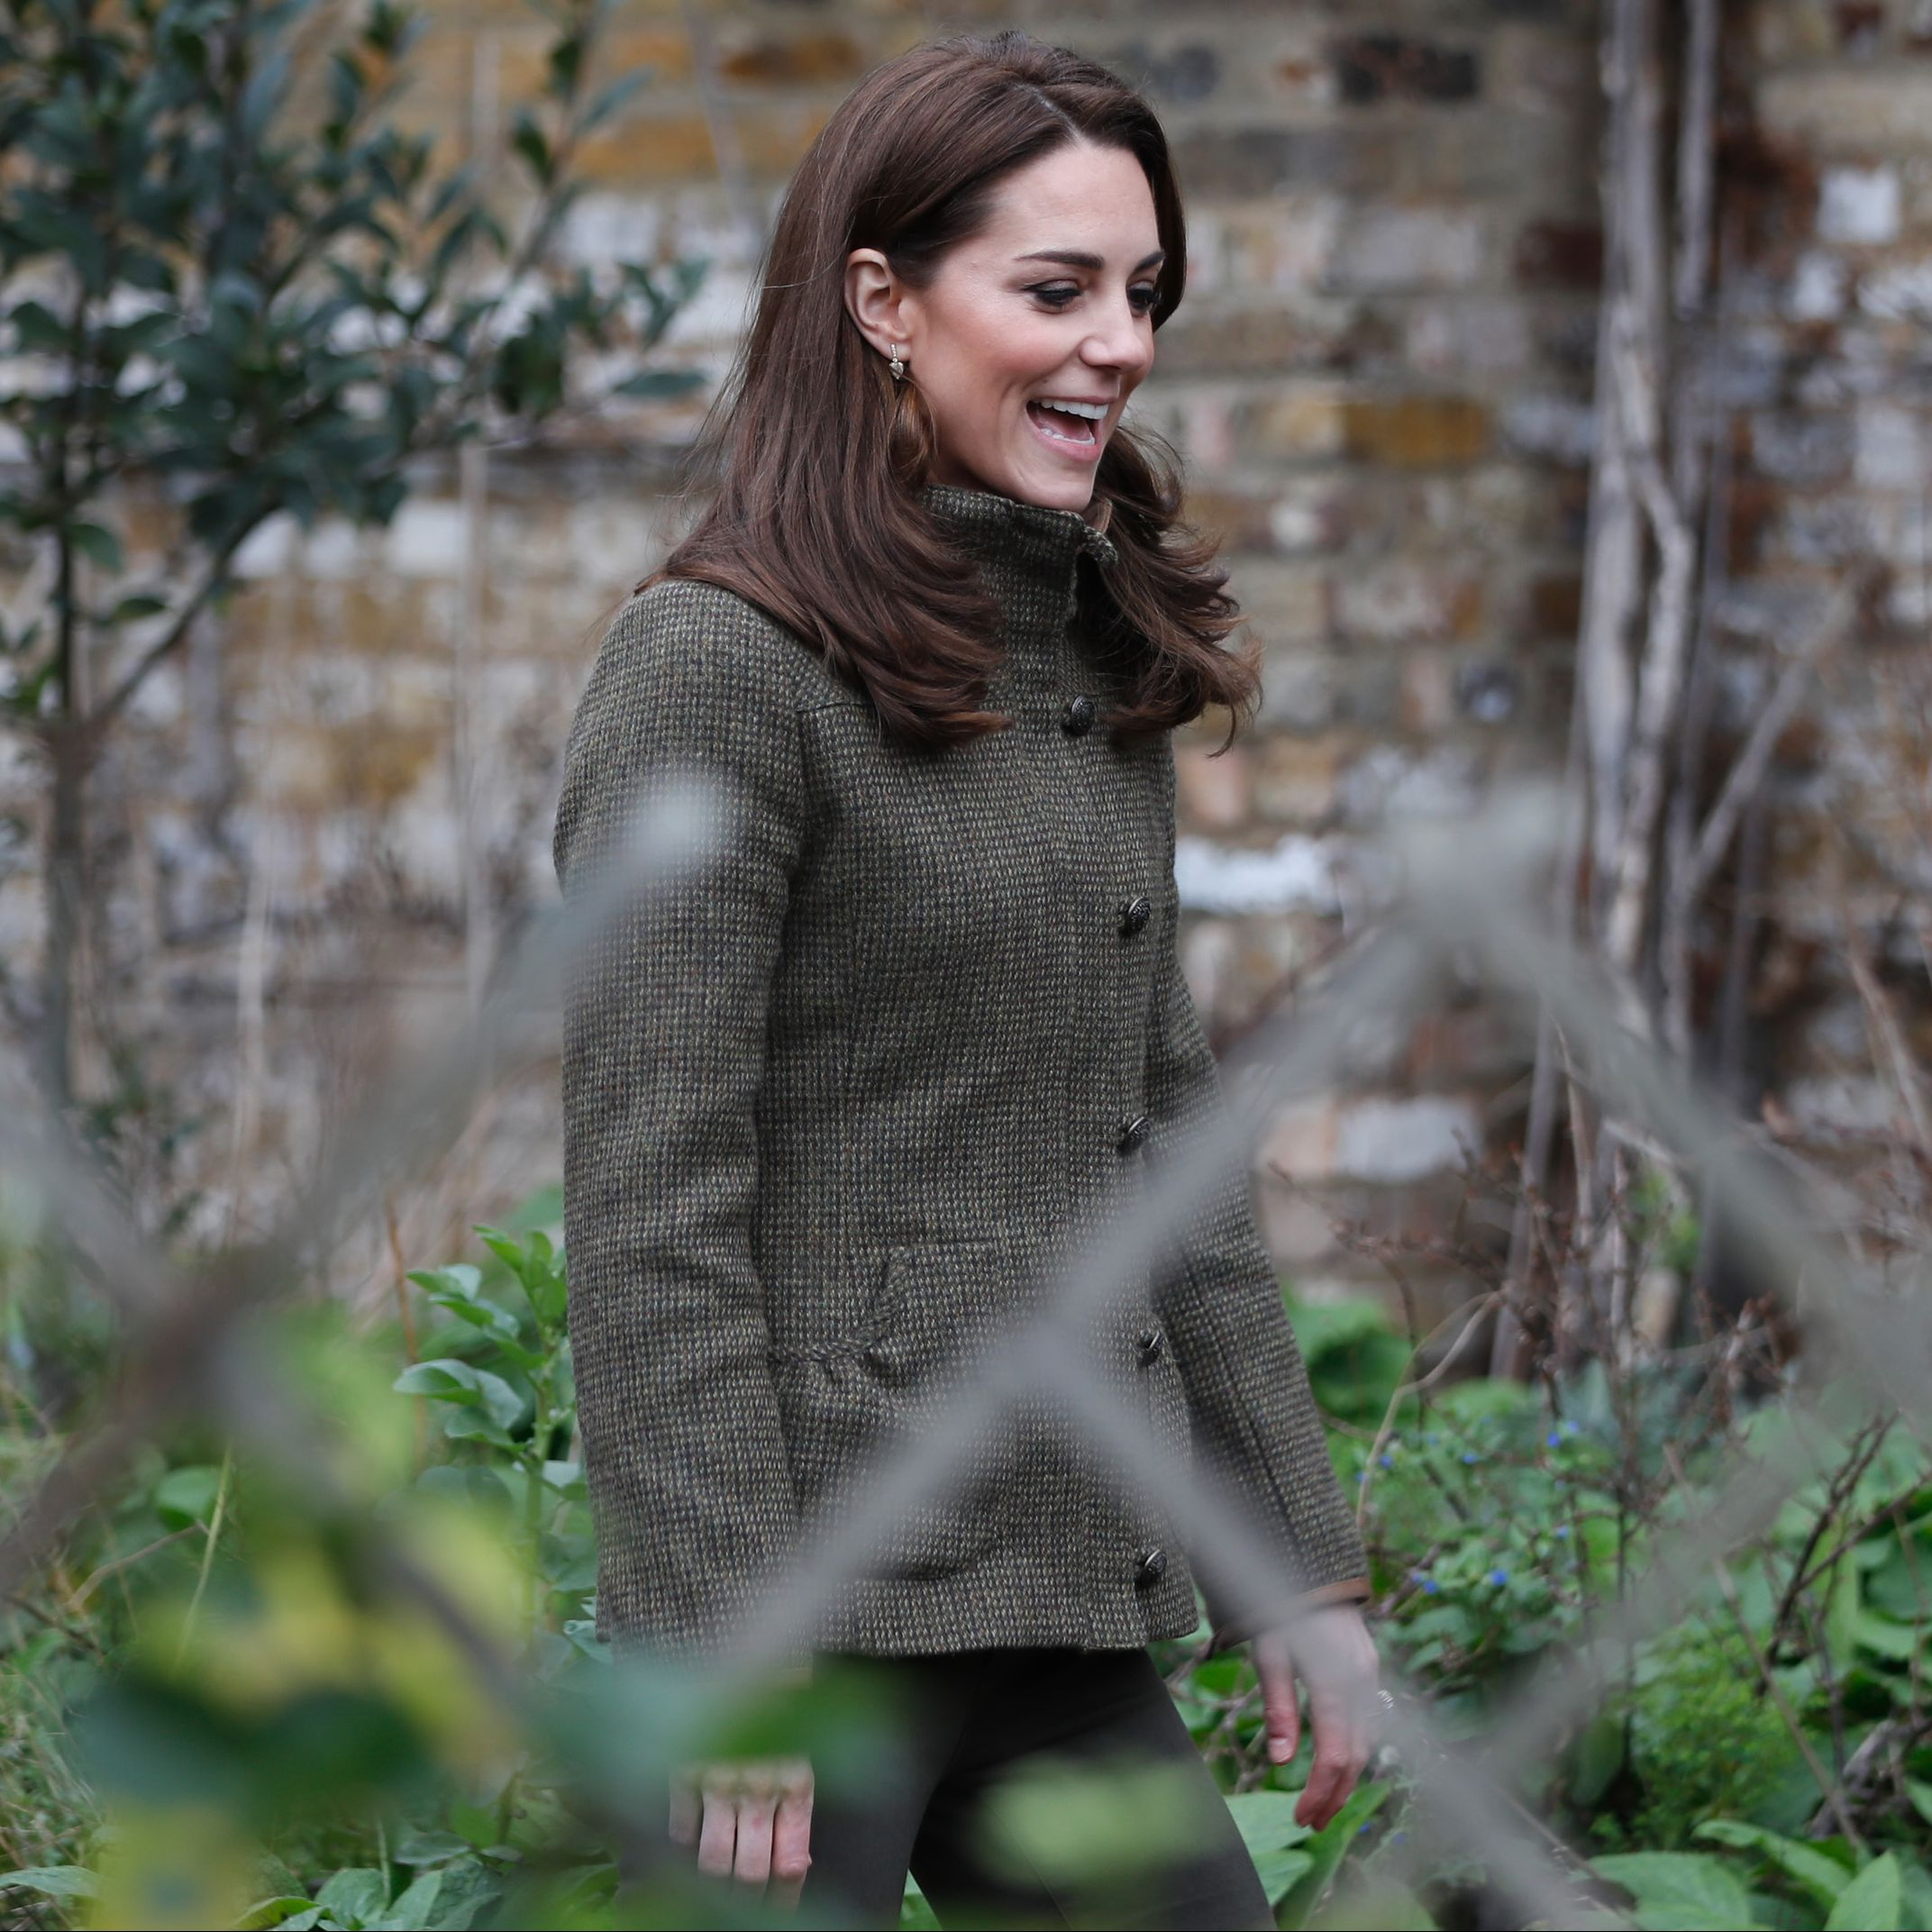 Cool Mom Kate Middleton Reportedly Walks Casually with Prince Louis in Public